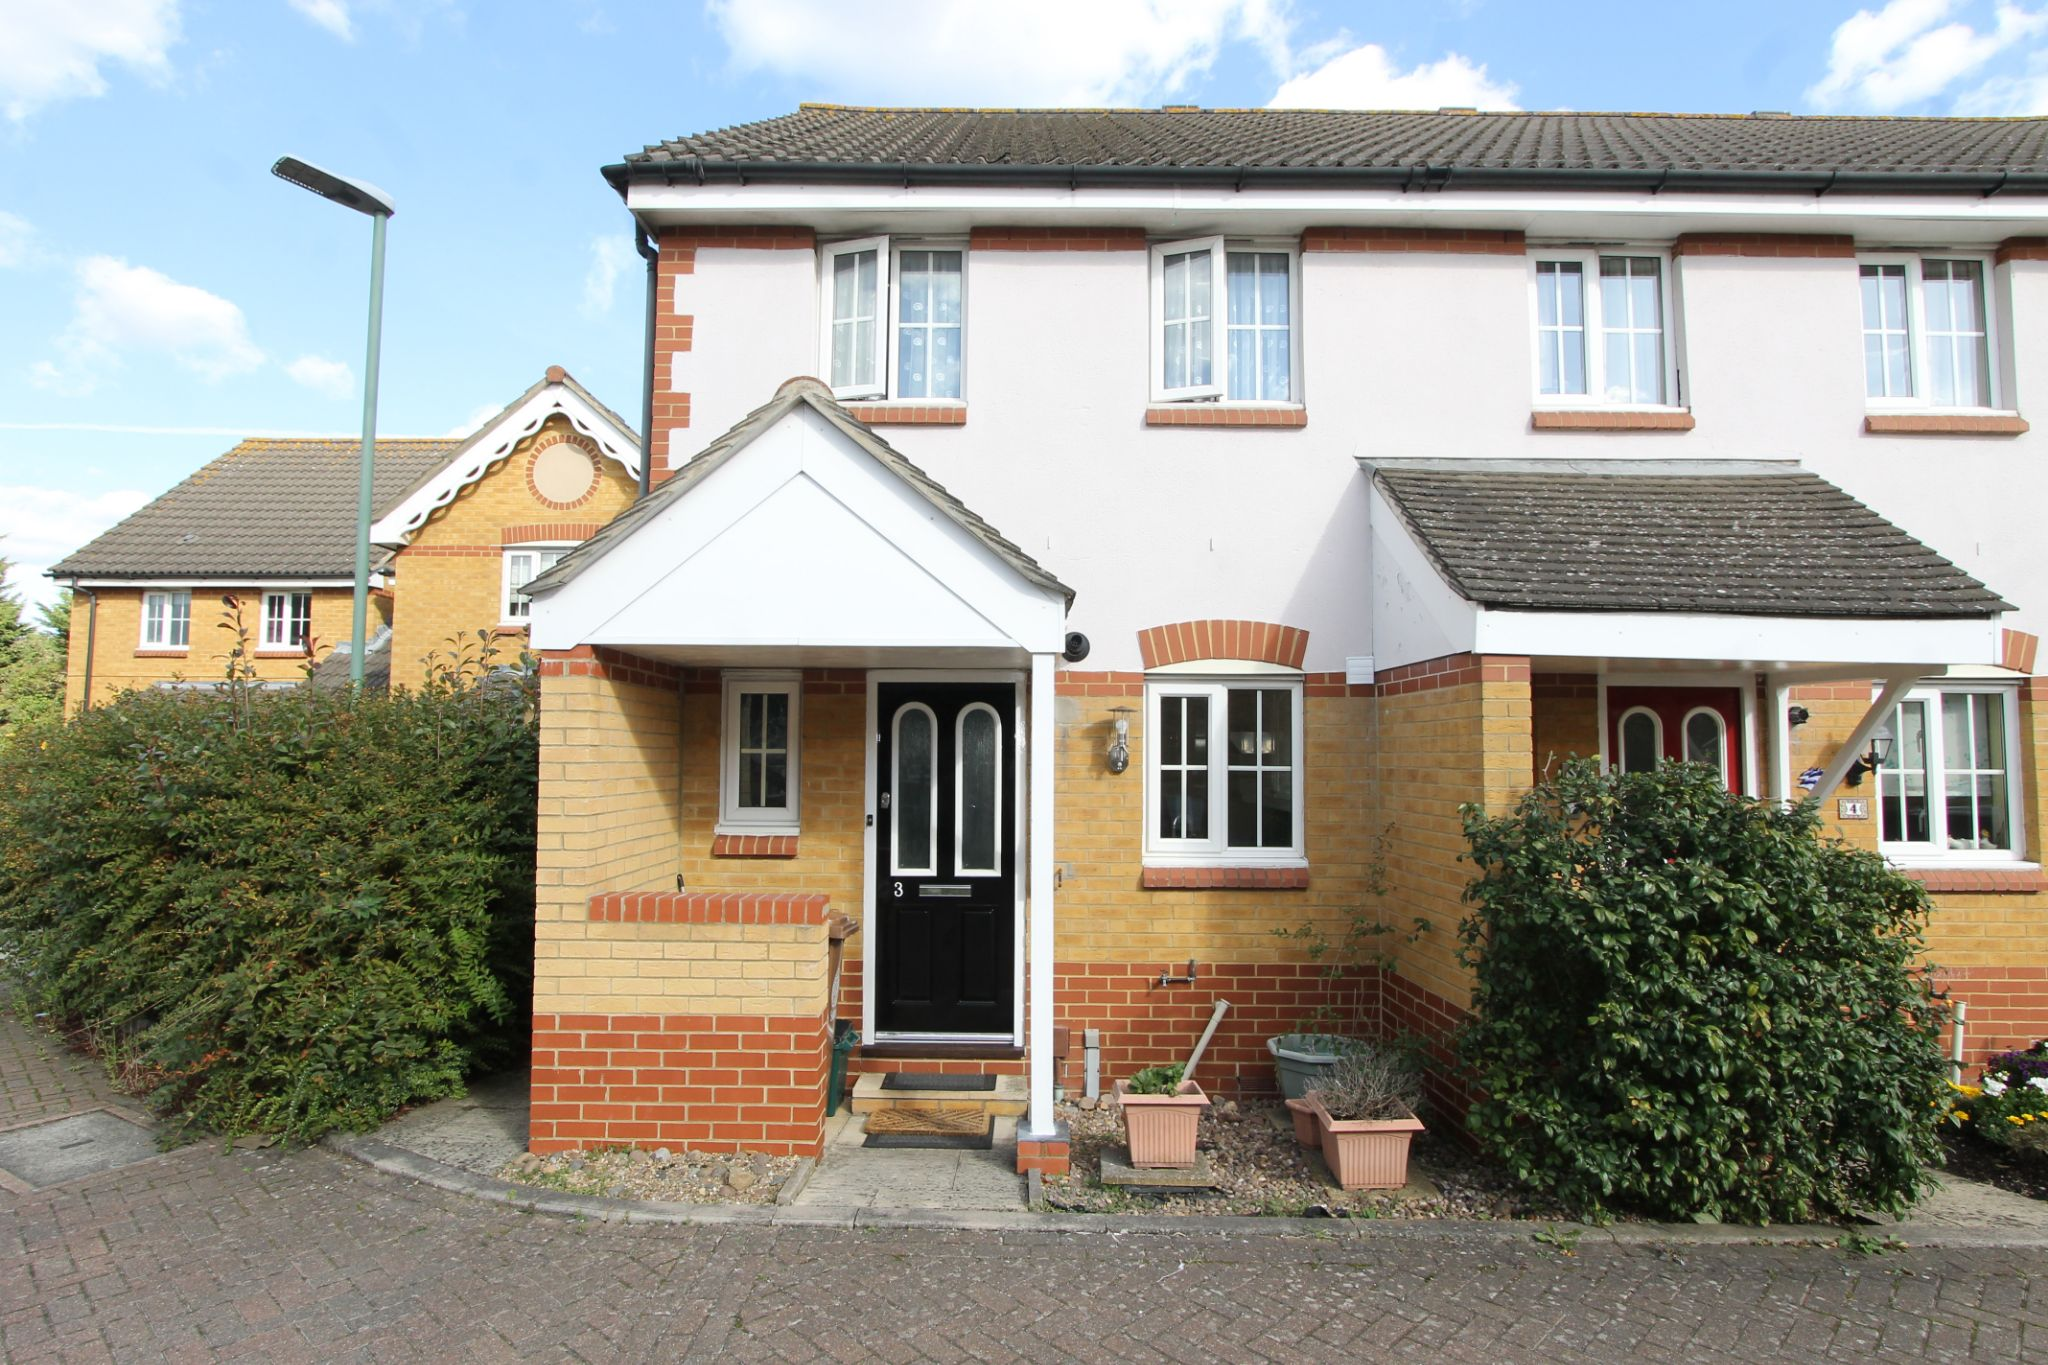 2 bedroom end terraced house Let Agreed in Sutton - Photograph 1.